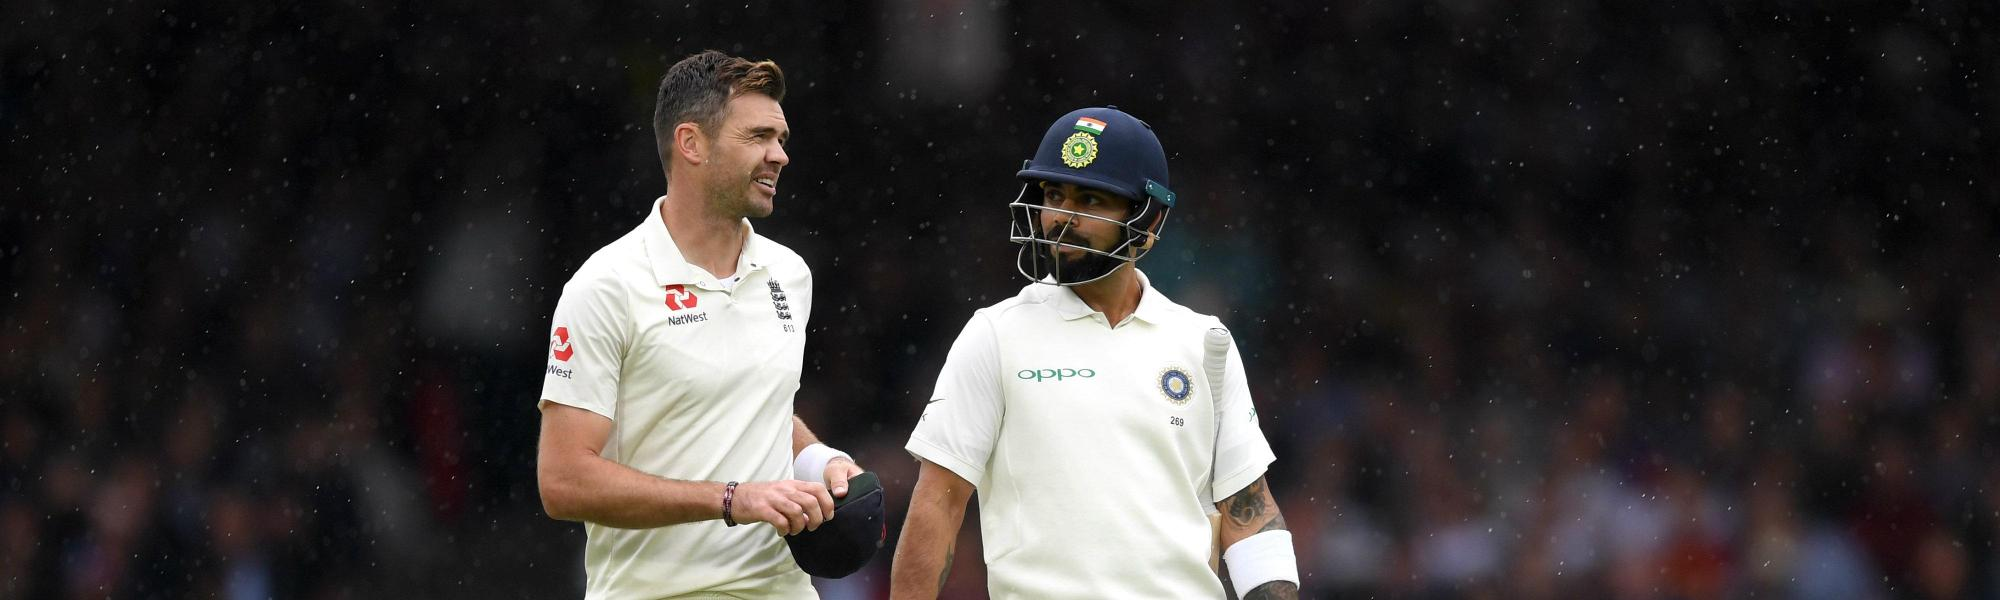 James Anderson and Virat Kohli